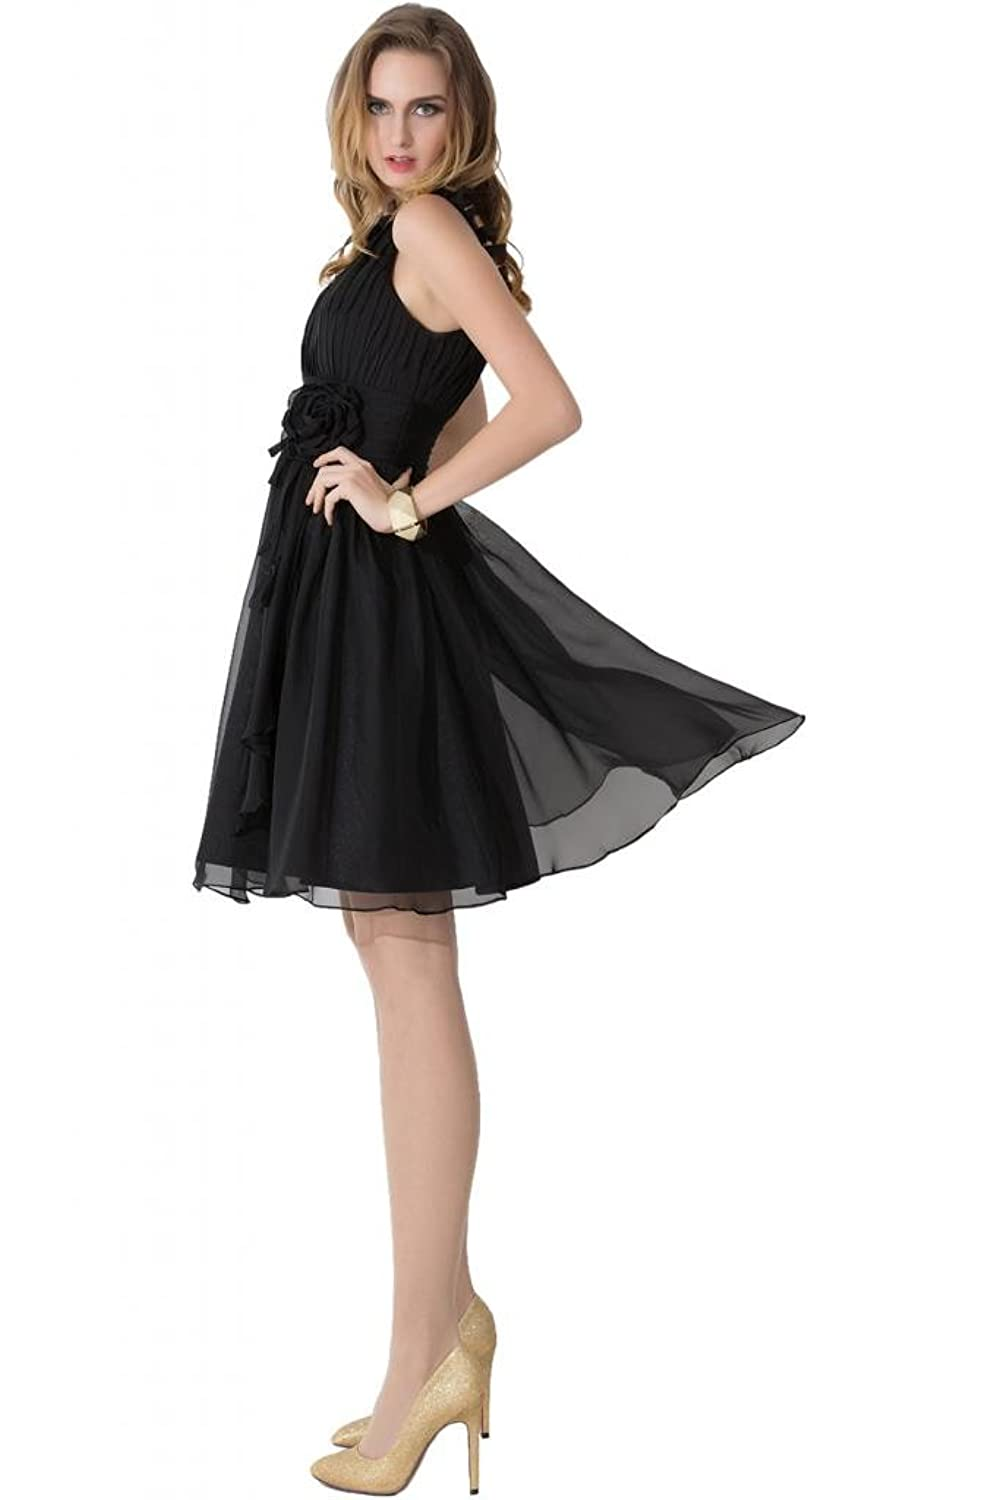 Sunvary Romantic One Shoulder Bodice Chiffon Cocktail Party Dresses